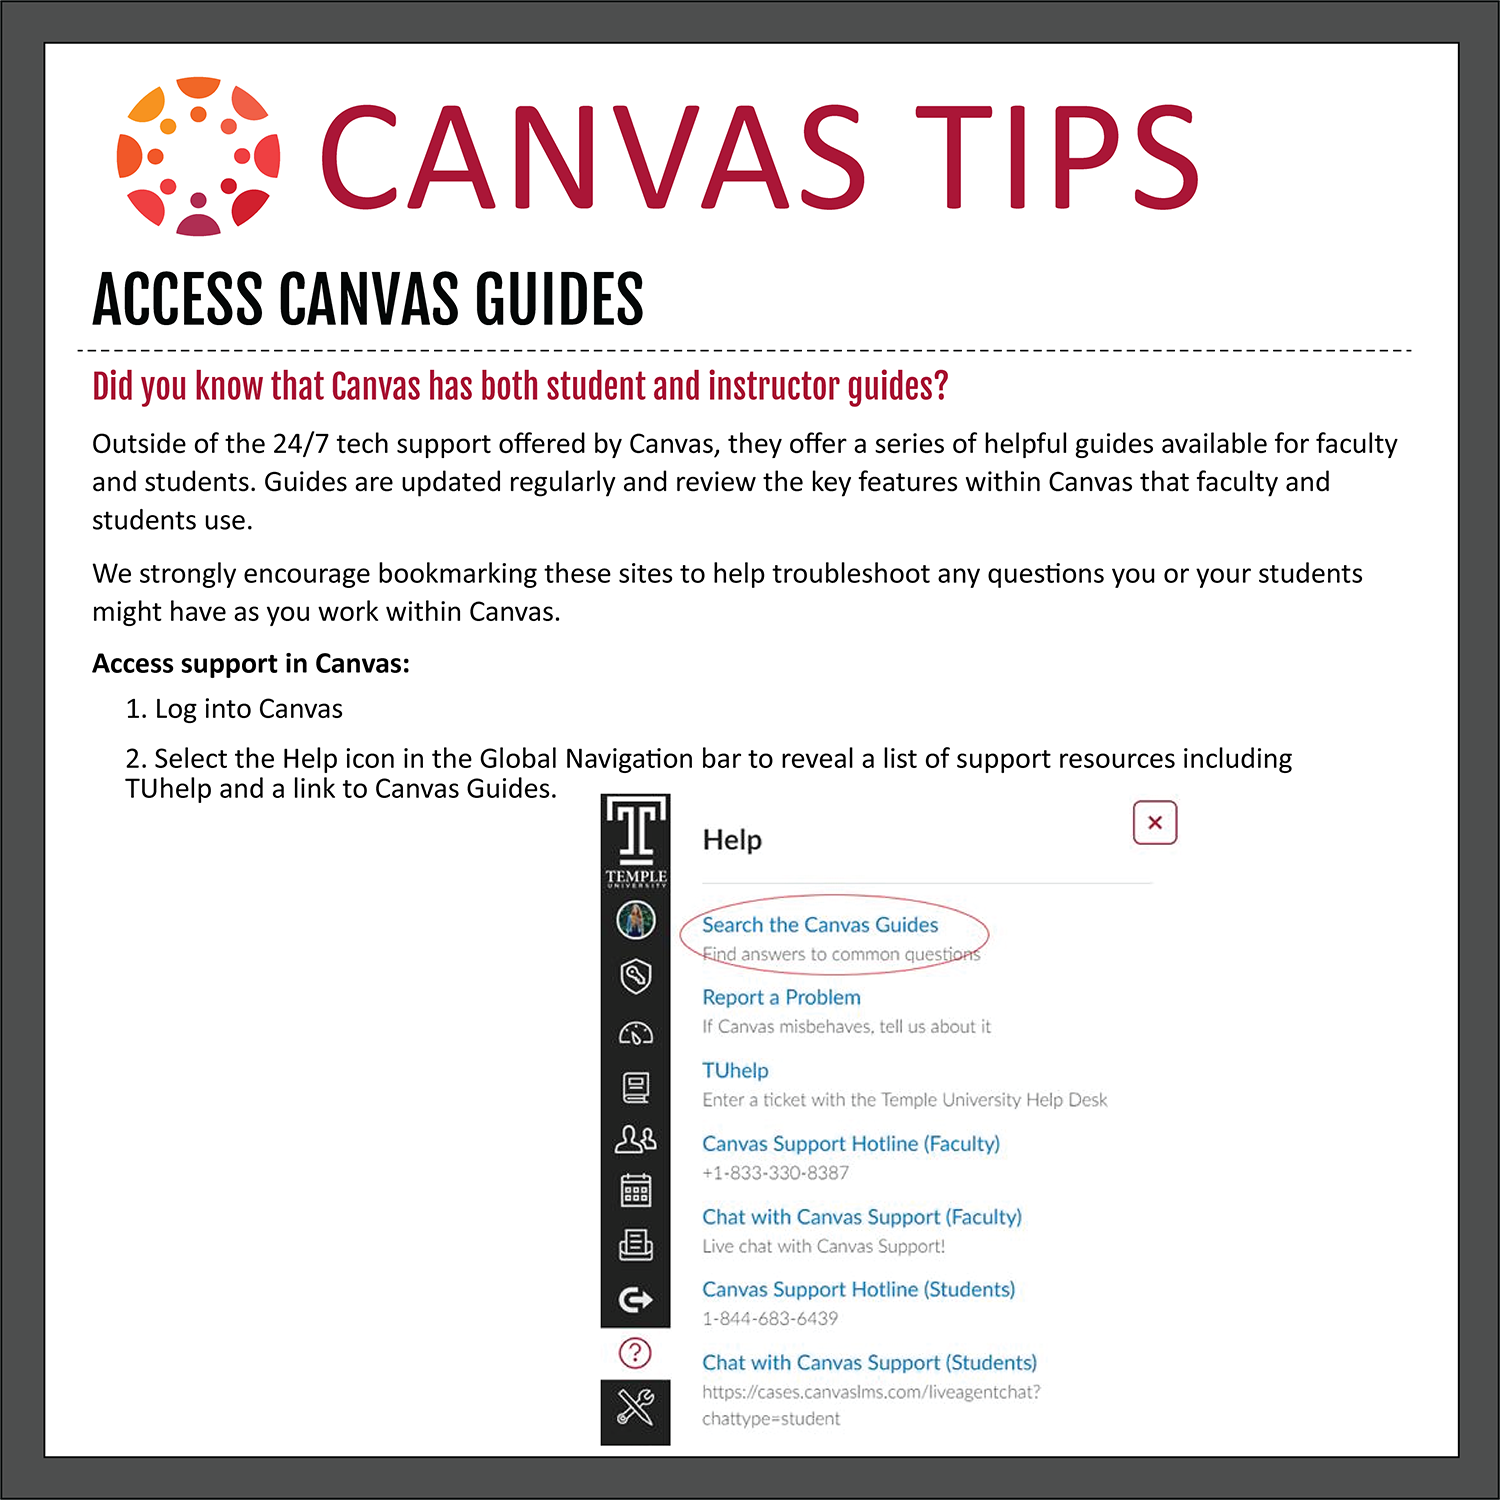 Tip 33: Access Canvas Guides